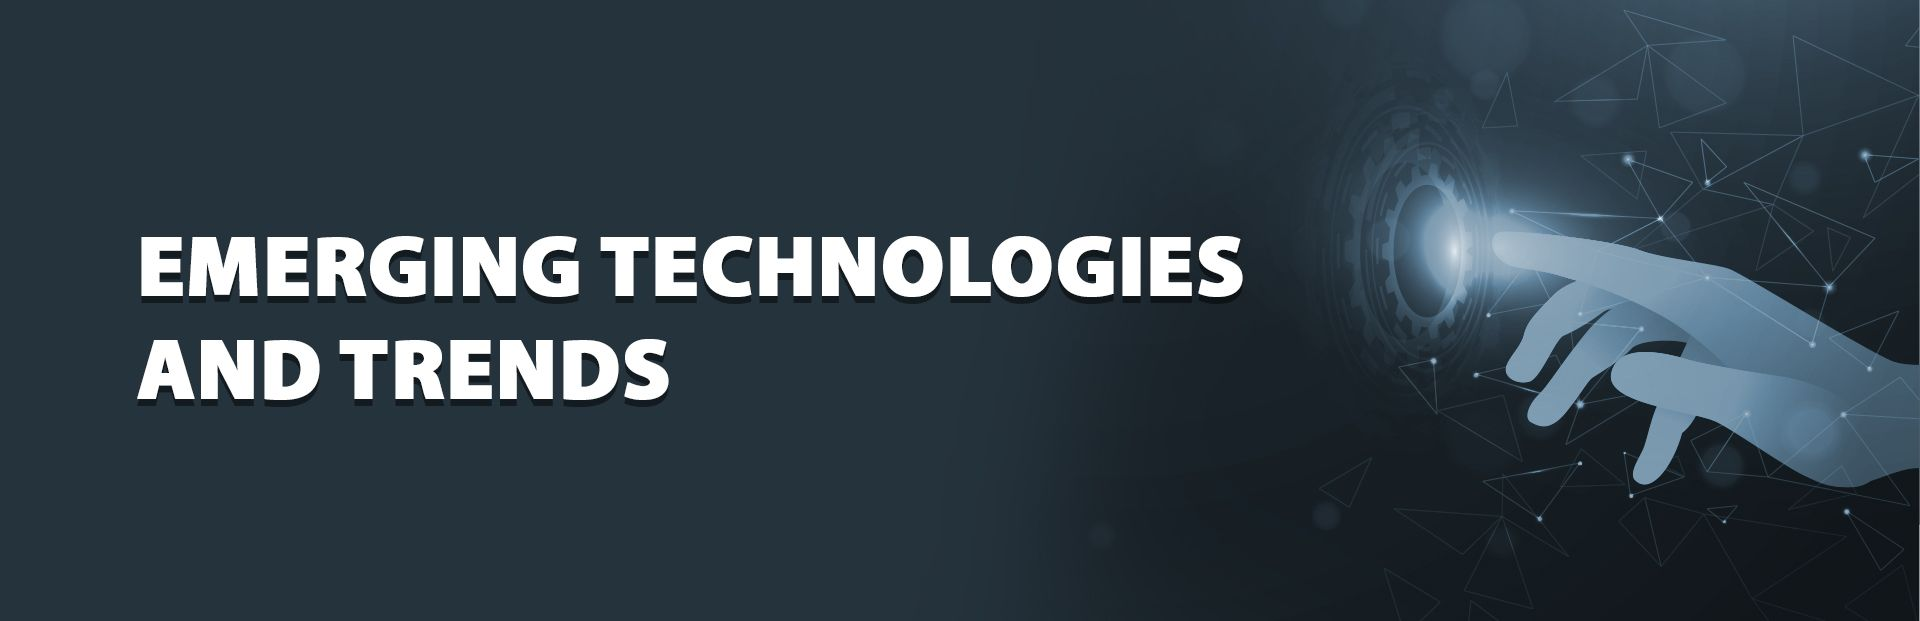 How Emerging Technologies affect Future of The Global Economy